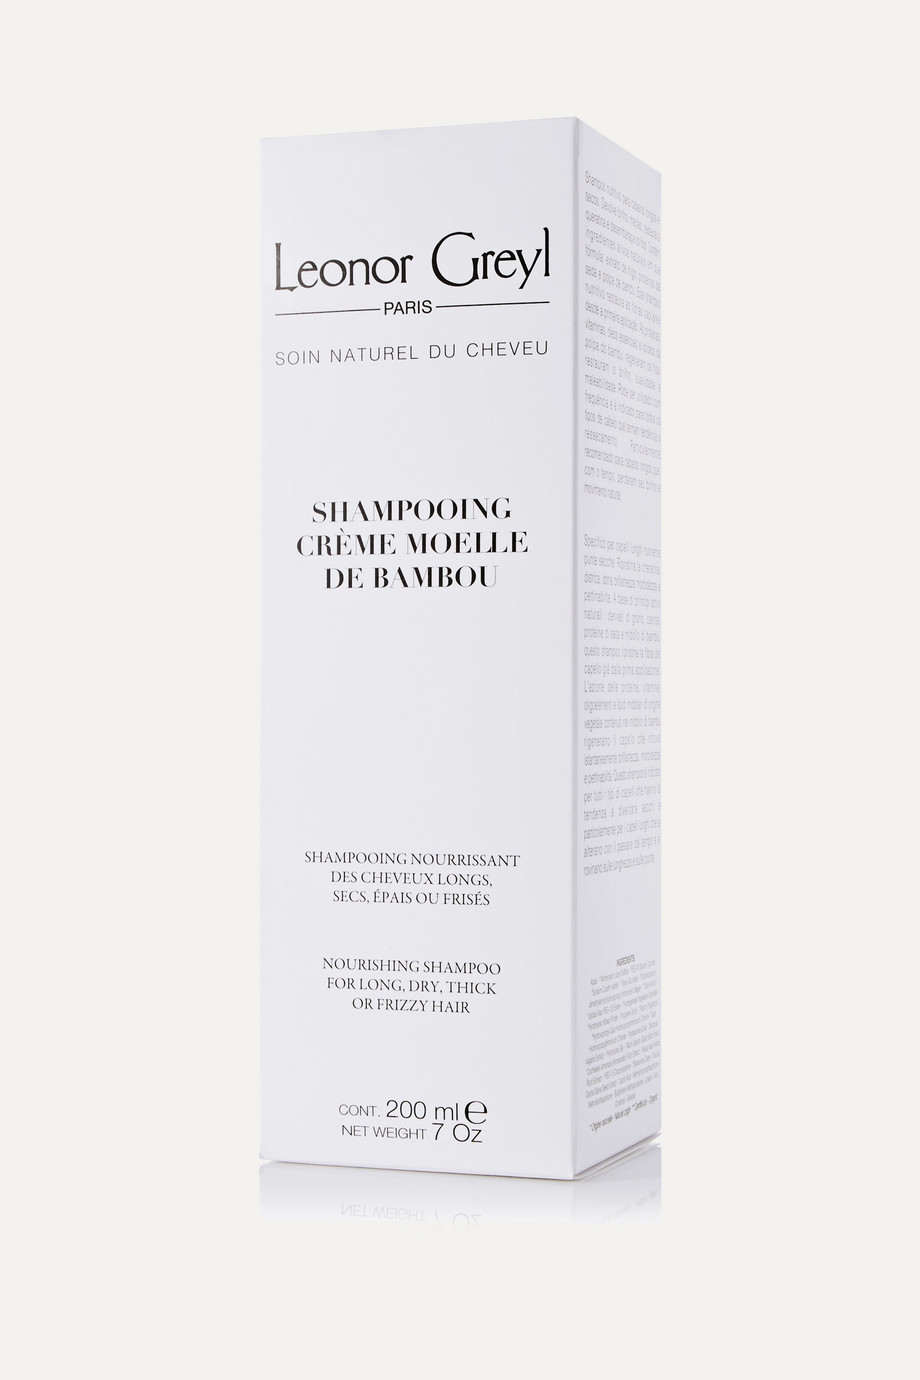 LEONOR GREYL PARIS Nourishing Shampoo, 200ml